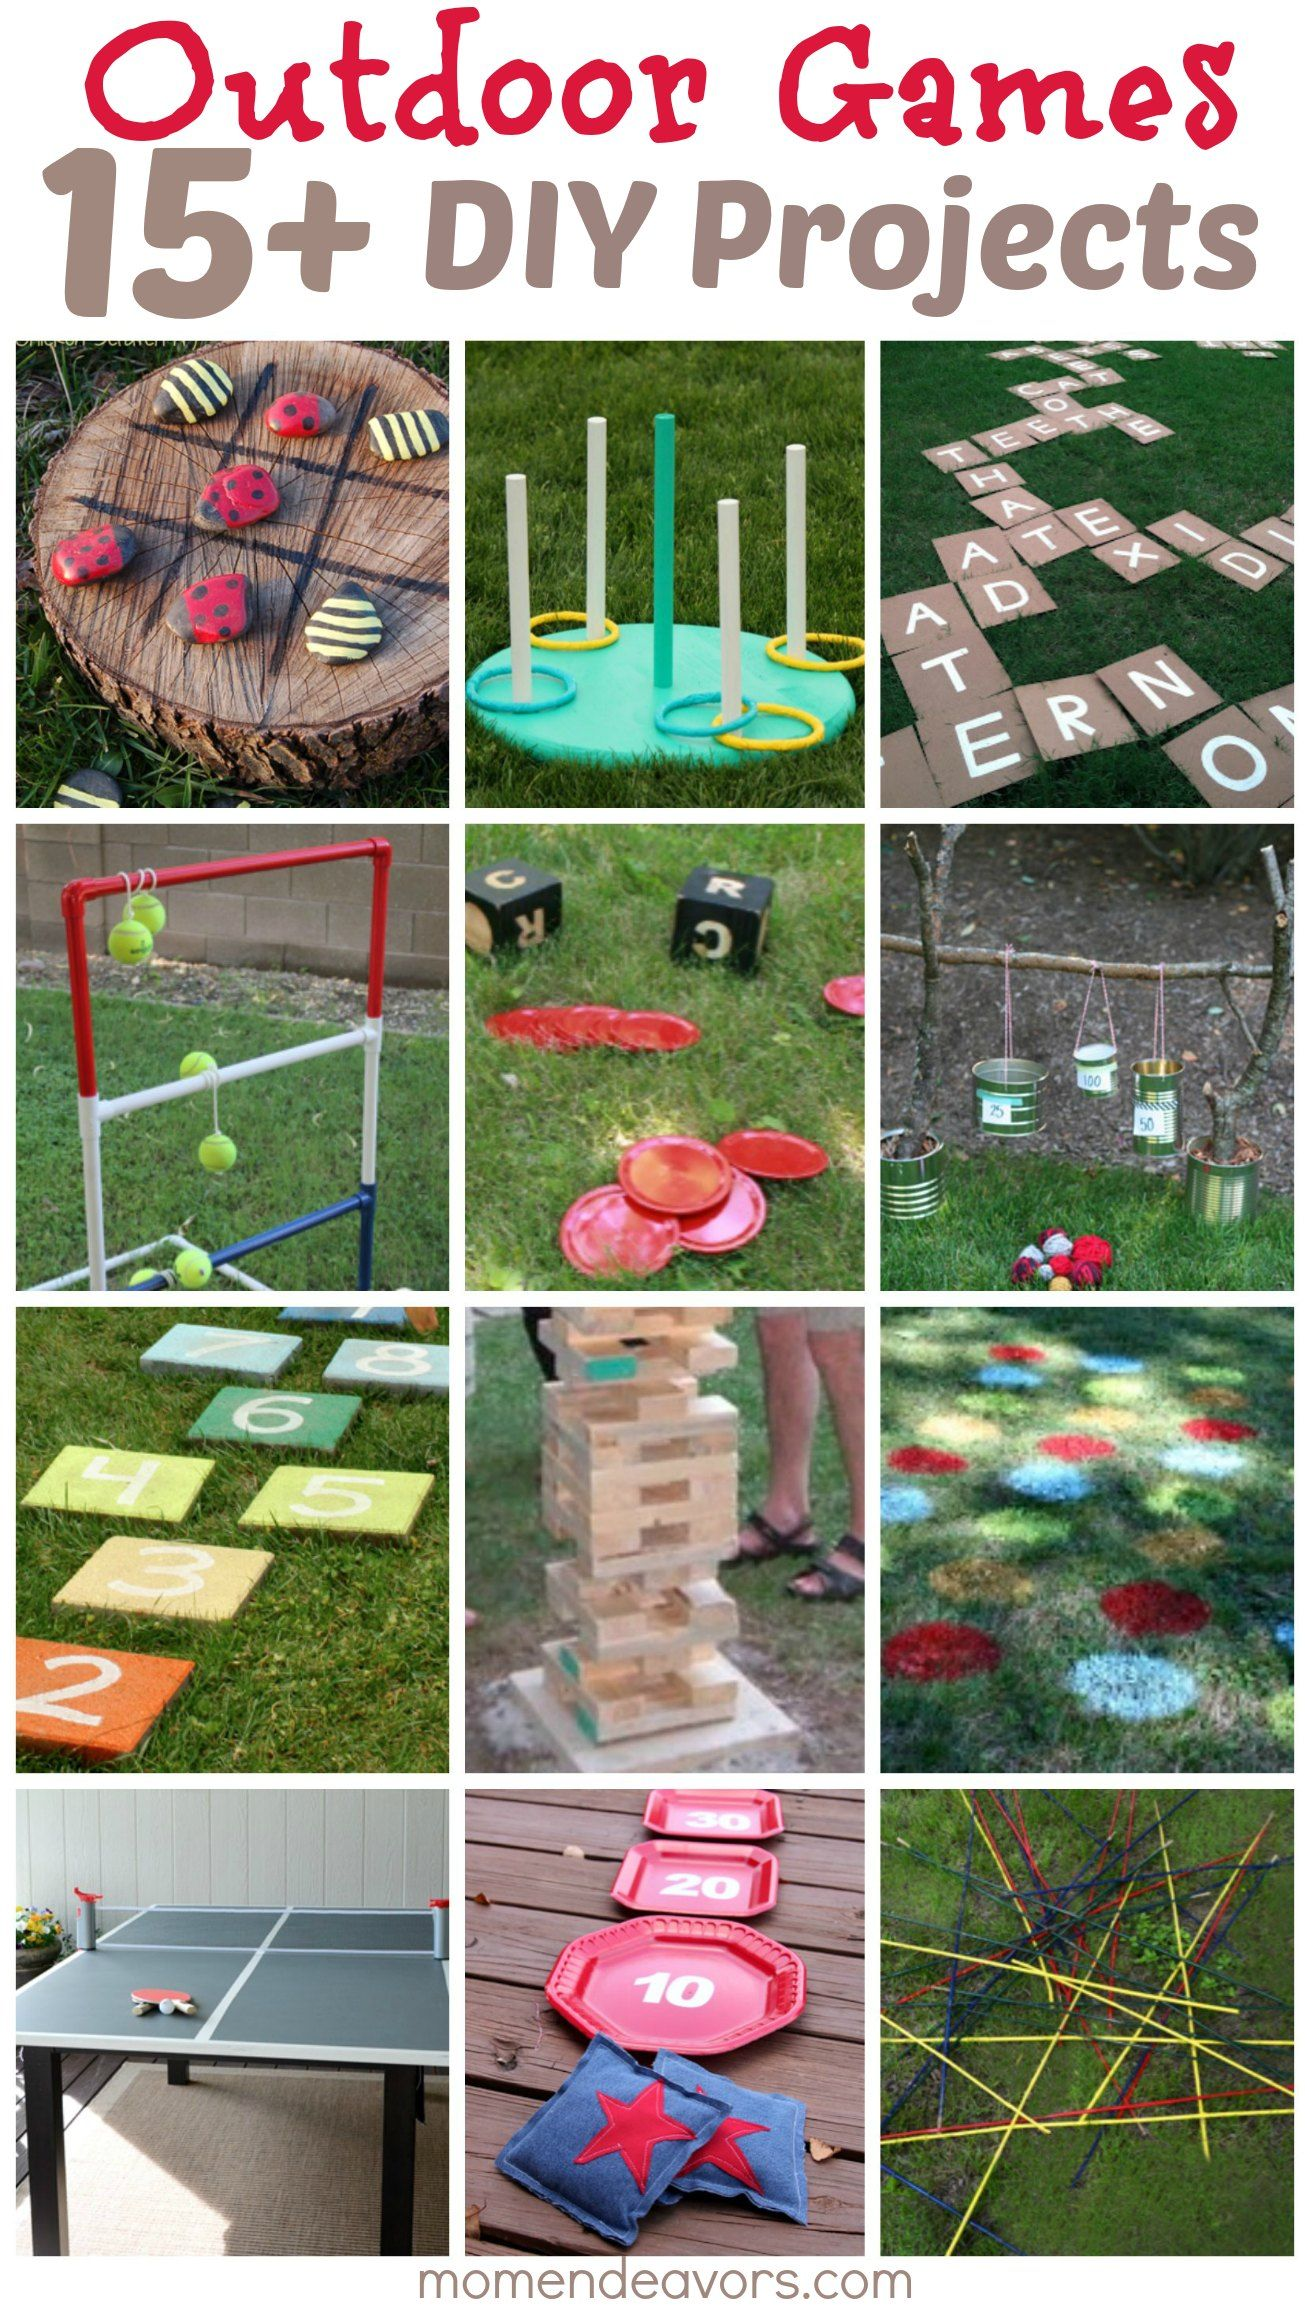 Outdoor Kinder Diy Outdoor Games 15 Awesome Project Ideas For Backyard Fun